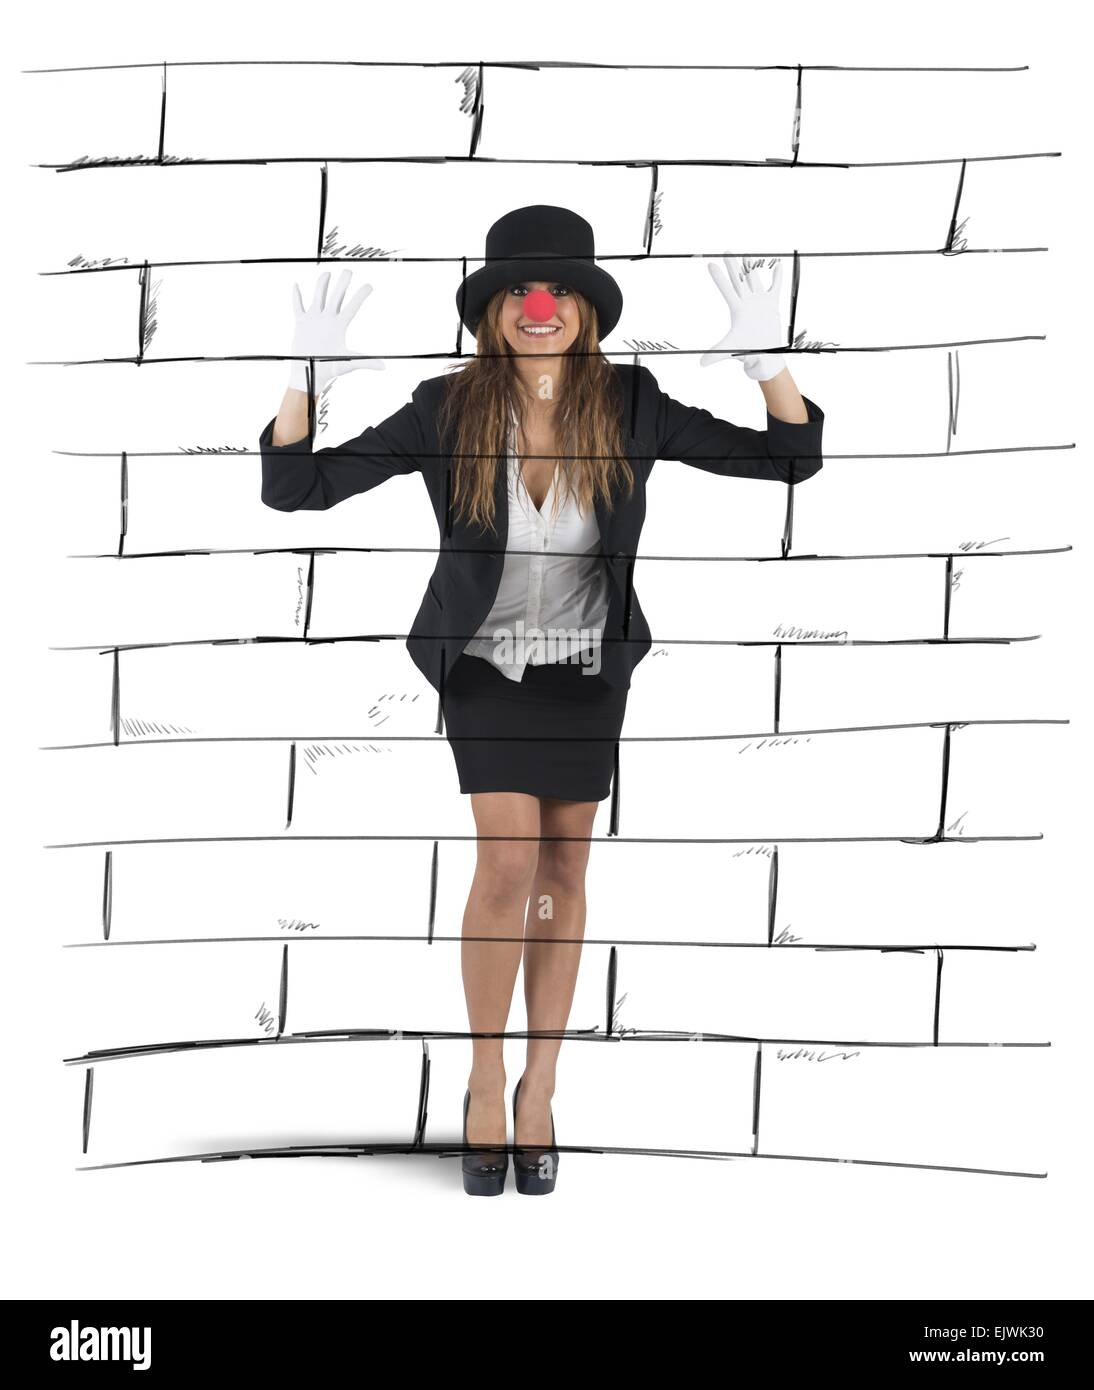 Mime imagining a wall - Stock Image